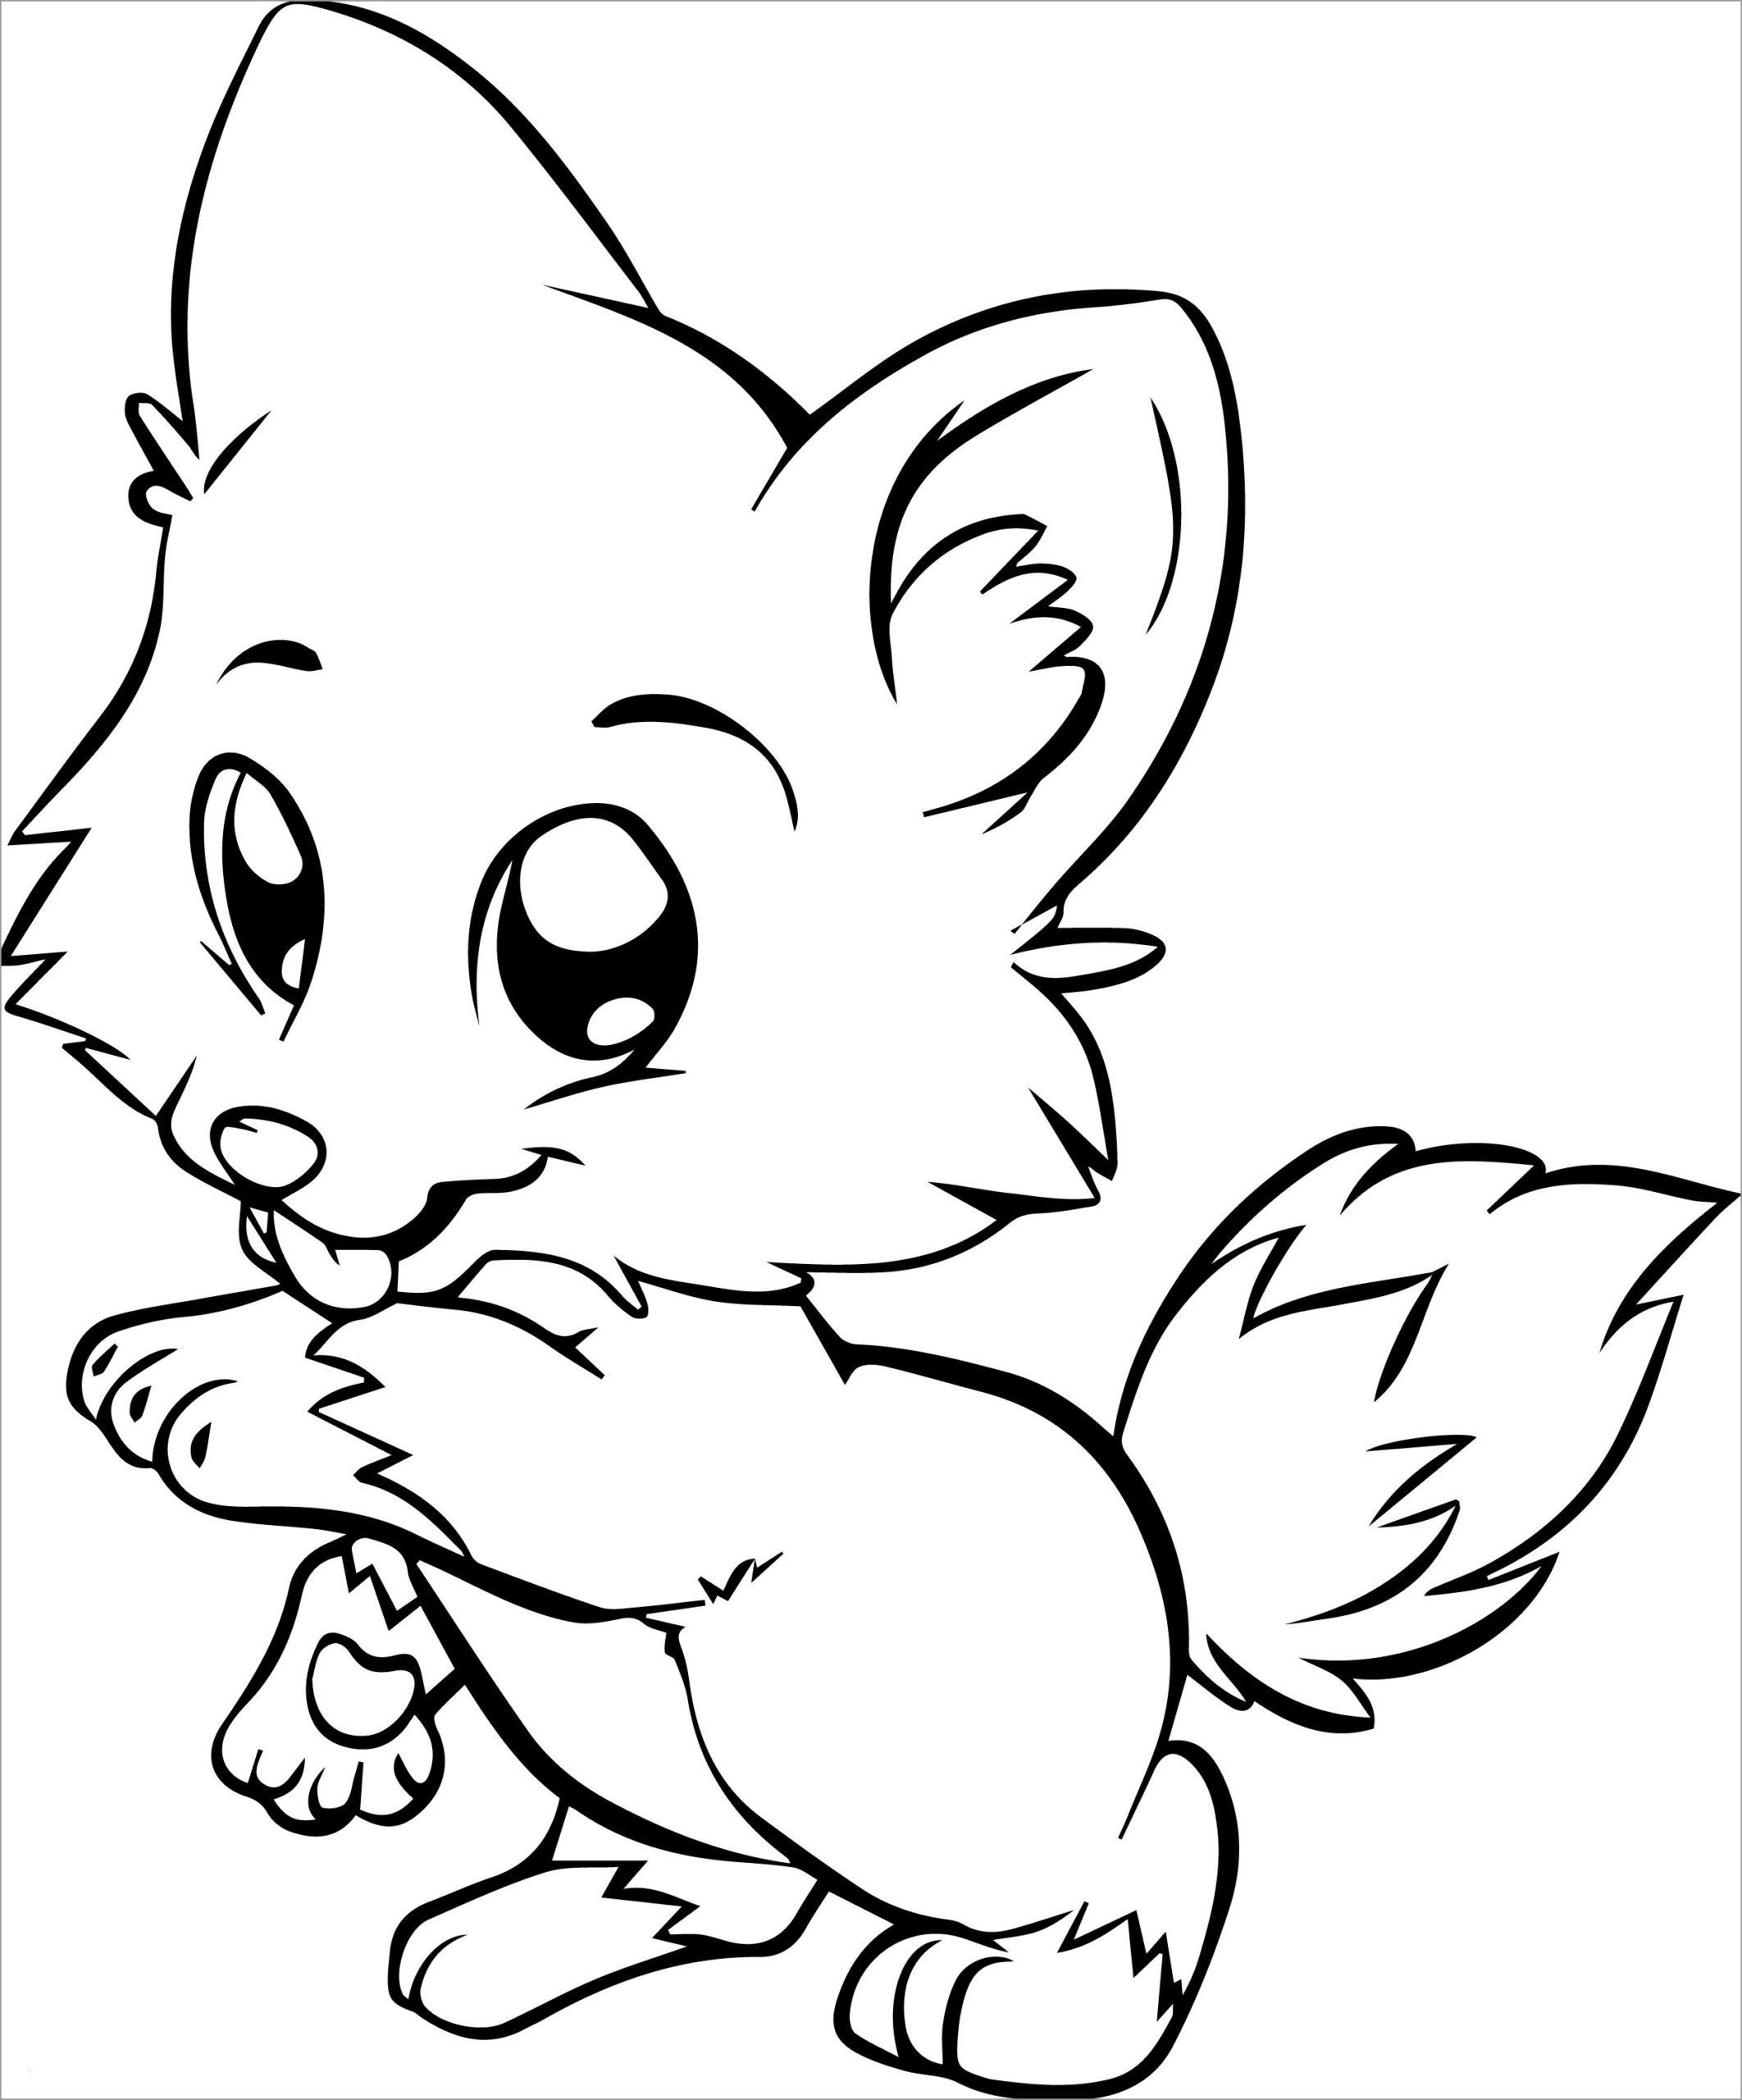 Fox Coloring Pages For Kids Coloring Pages Baby Fox Coloring Coloringbay Dinosaur In 2020 Unicorn Coloring Pages Fox Coloring Page Animal Coloring Pages